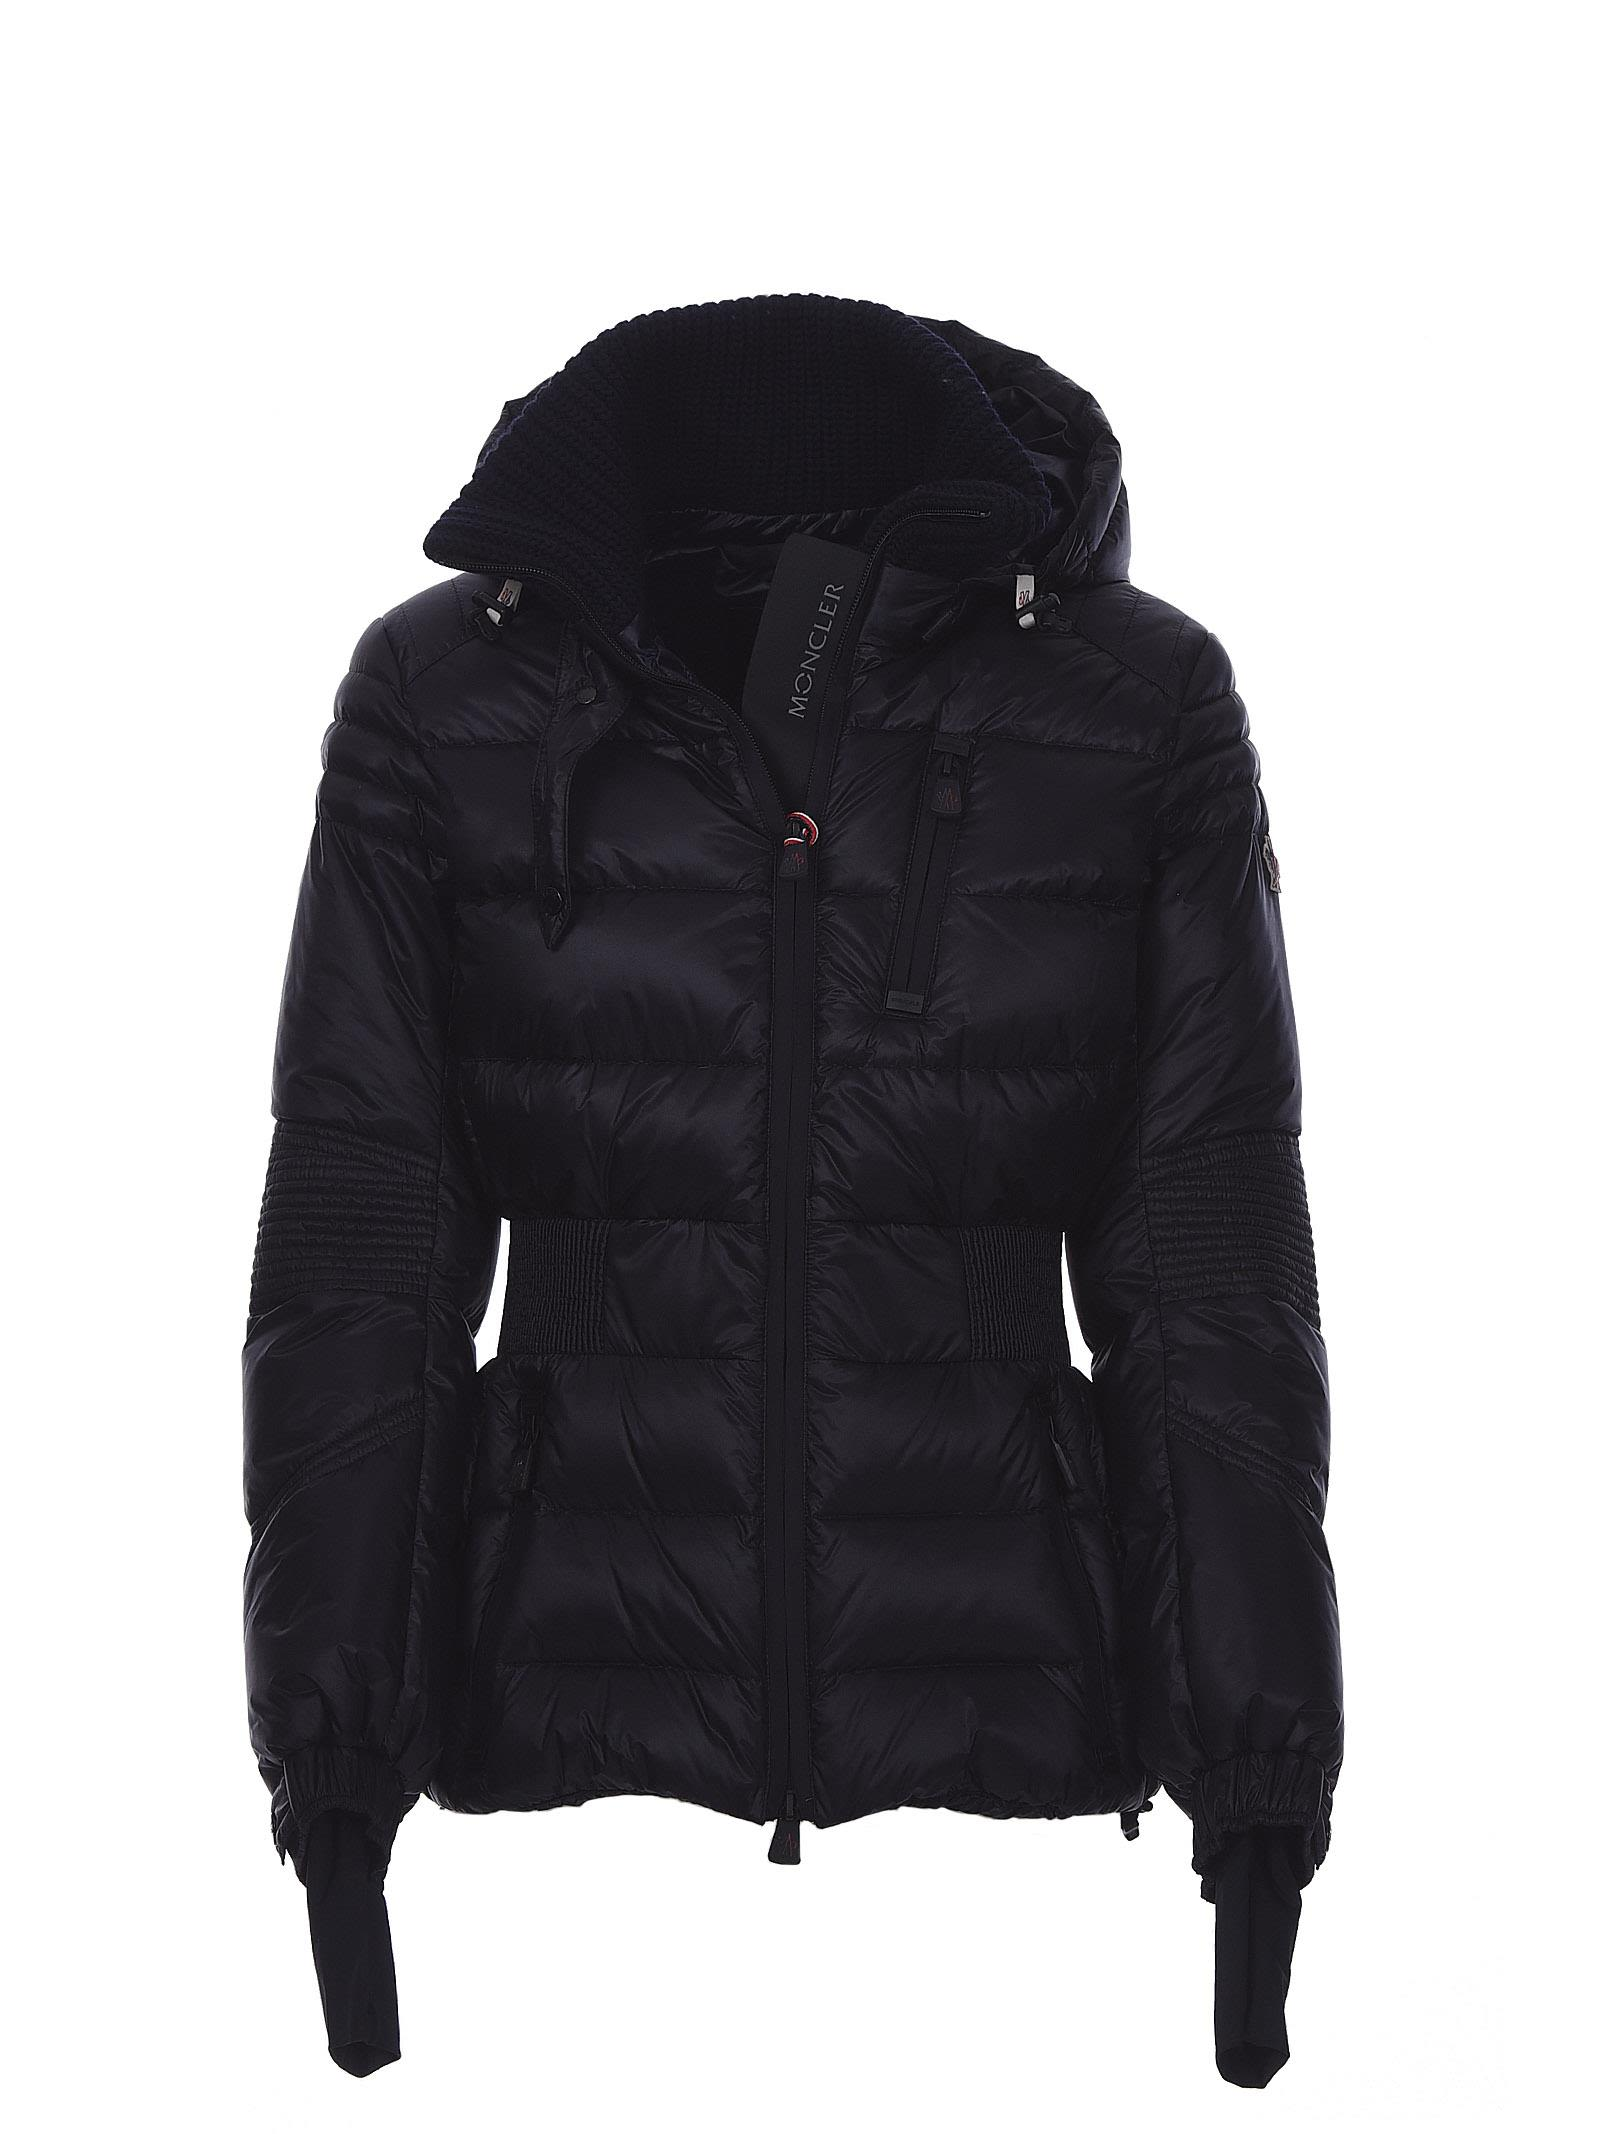 Moncler Grenoble Padded Jacket Roncevaux